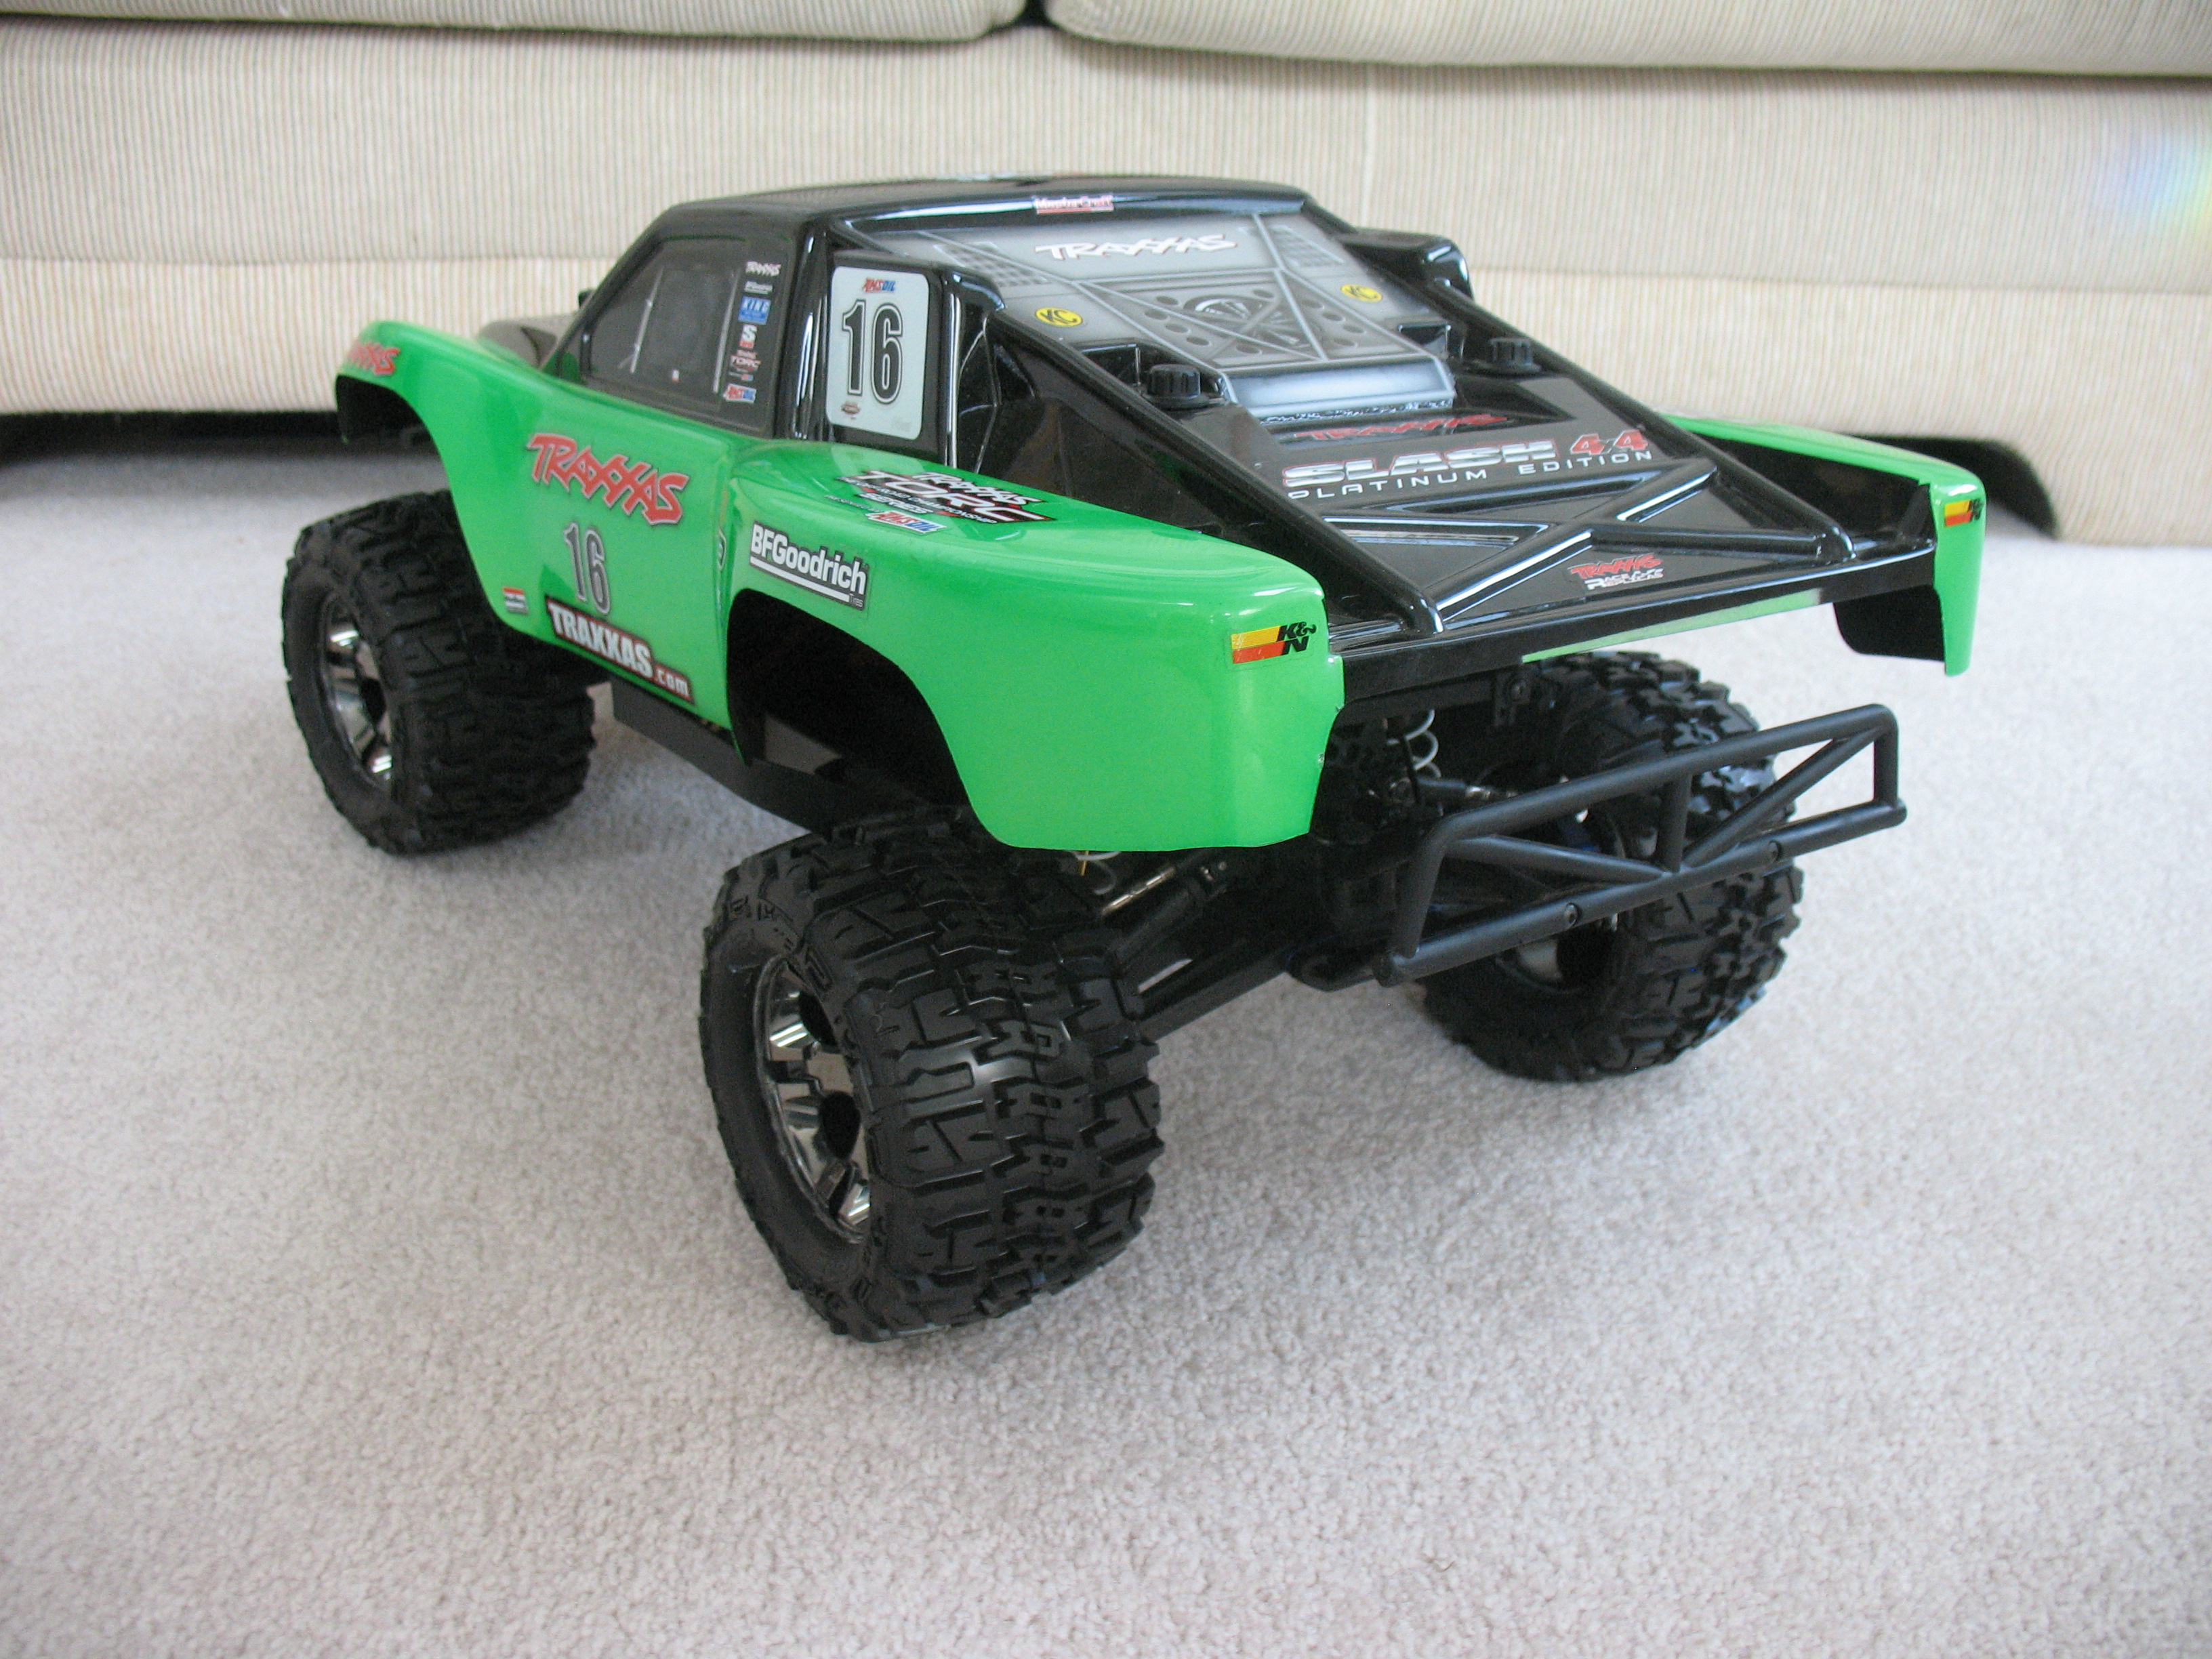 New Mt Slash 4x4 R4lly Gt8 Backsl4sh Sl4sh P4de Any Way Here Are Some Pictures